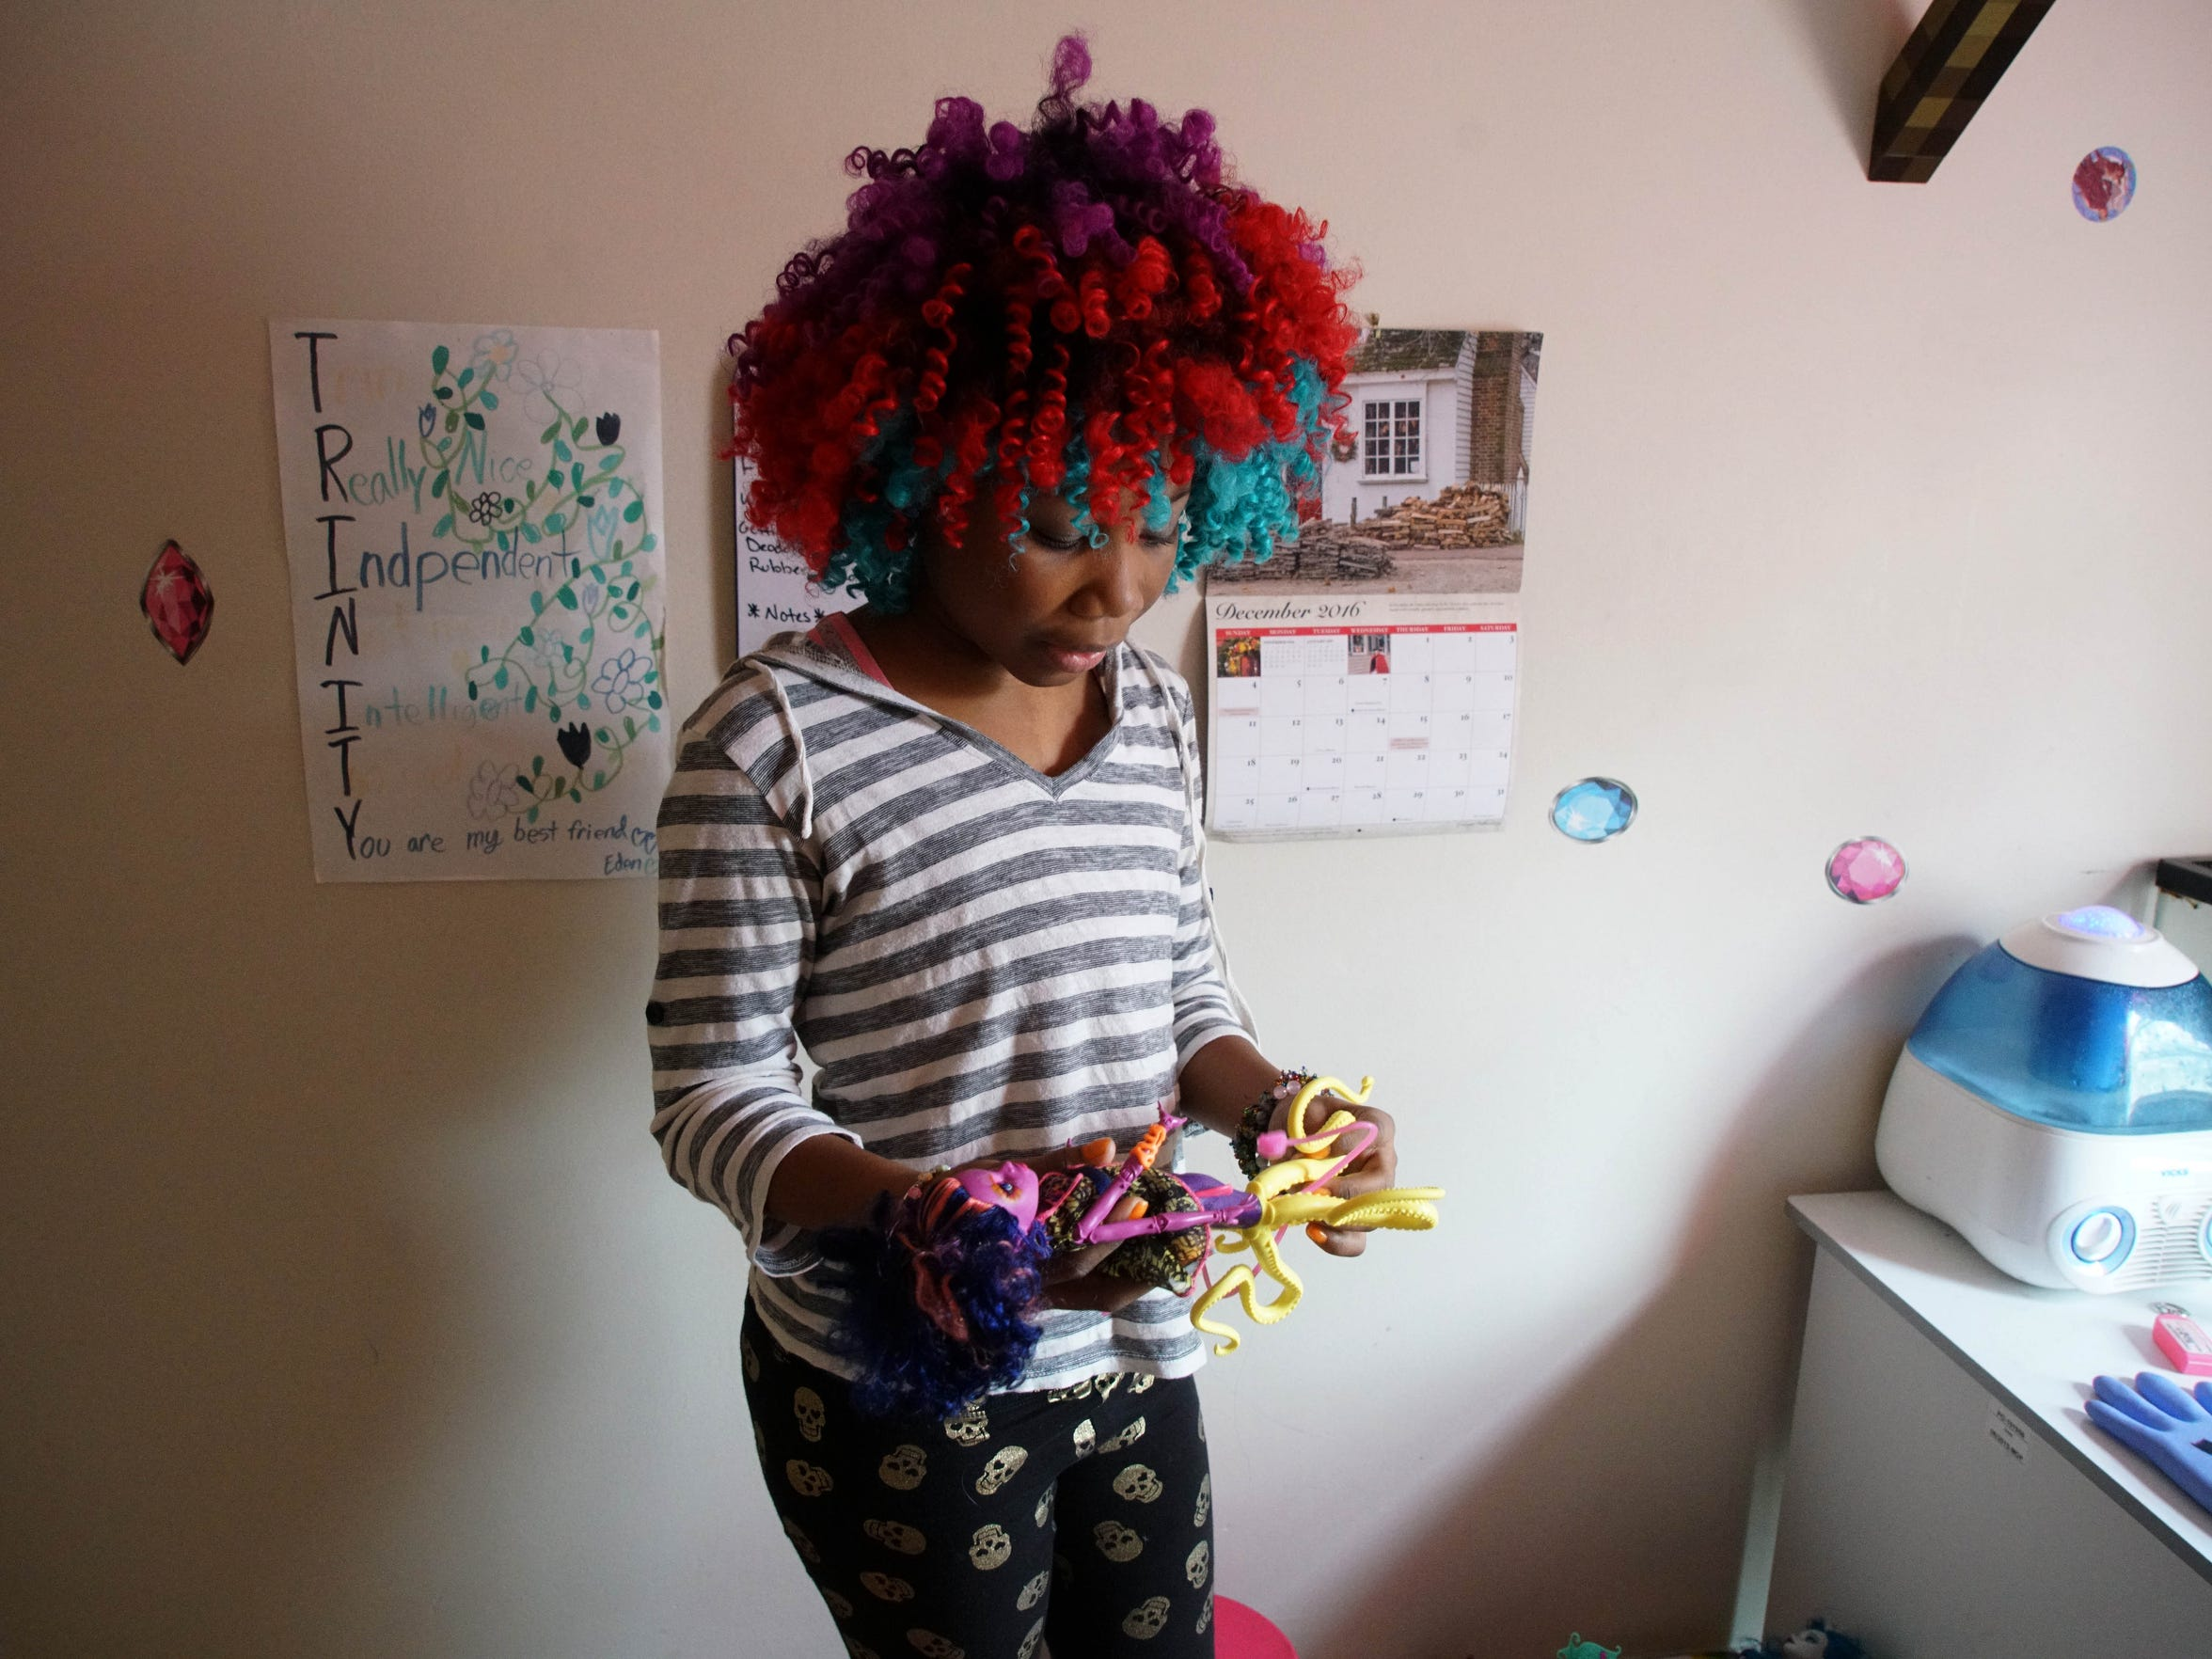 Trinity plays with one her dolls in her bedroom.